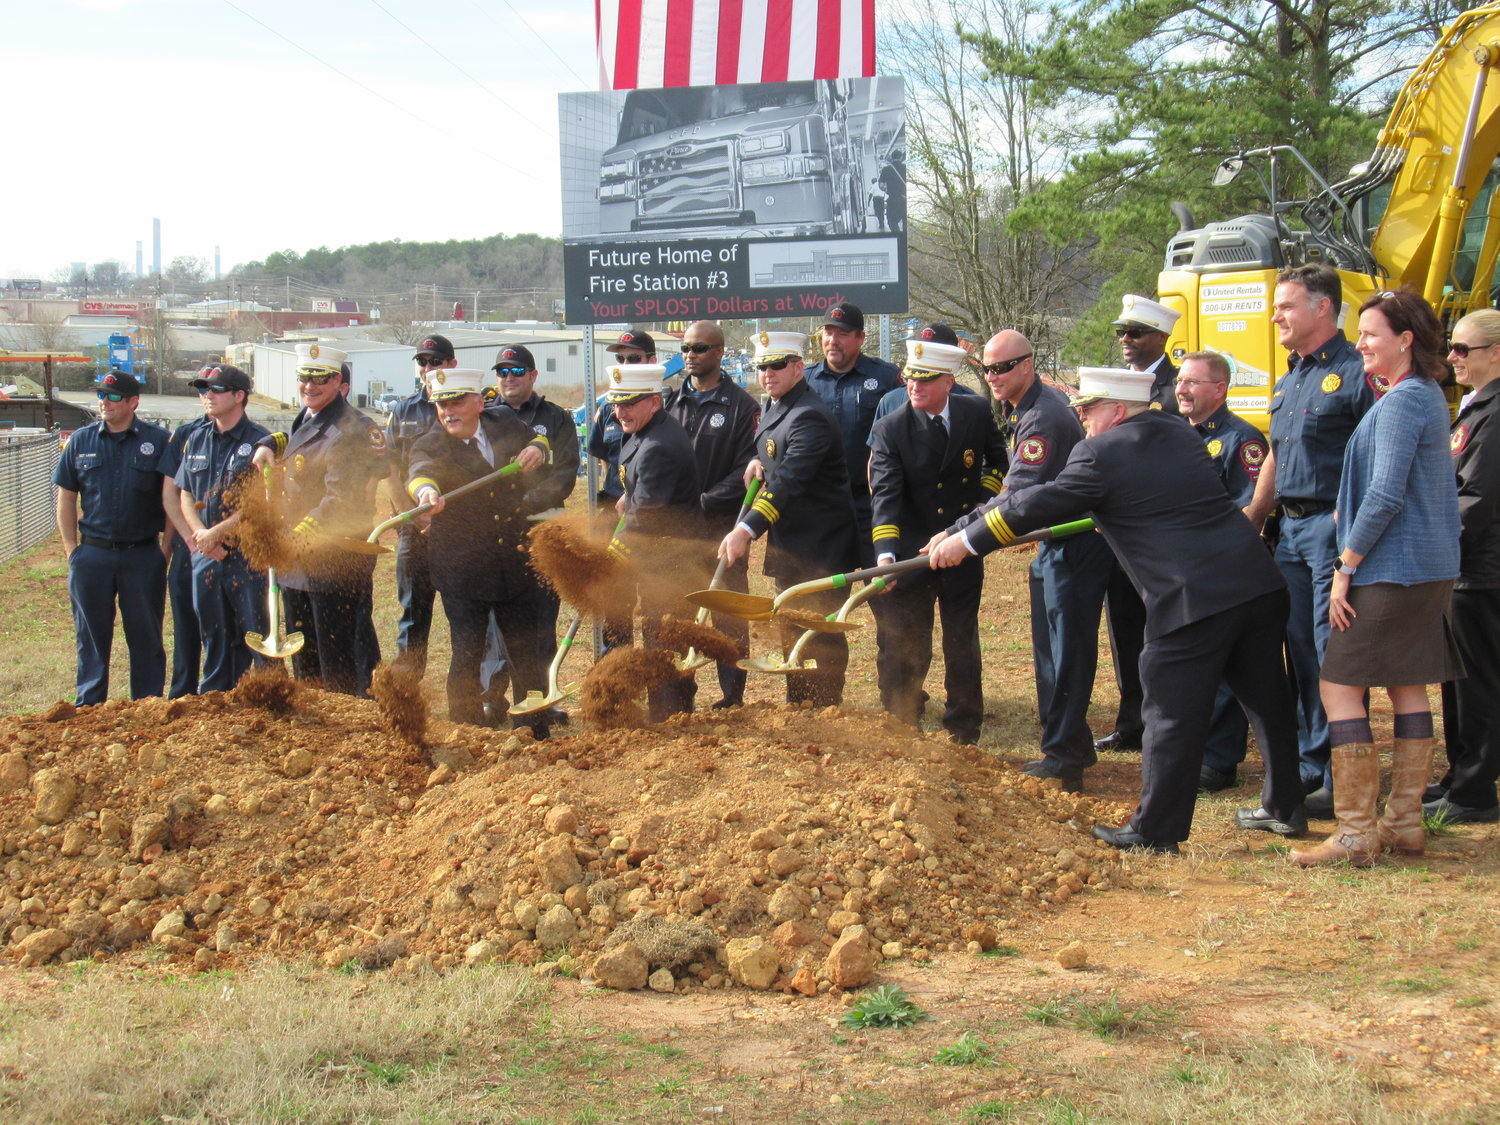 The new No. 3 fire station in construction along Village Hill Drive is expected to go into operation this fall.